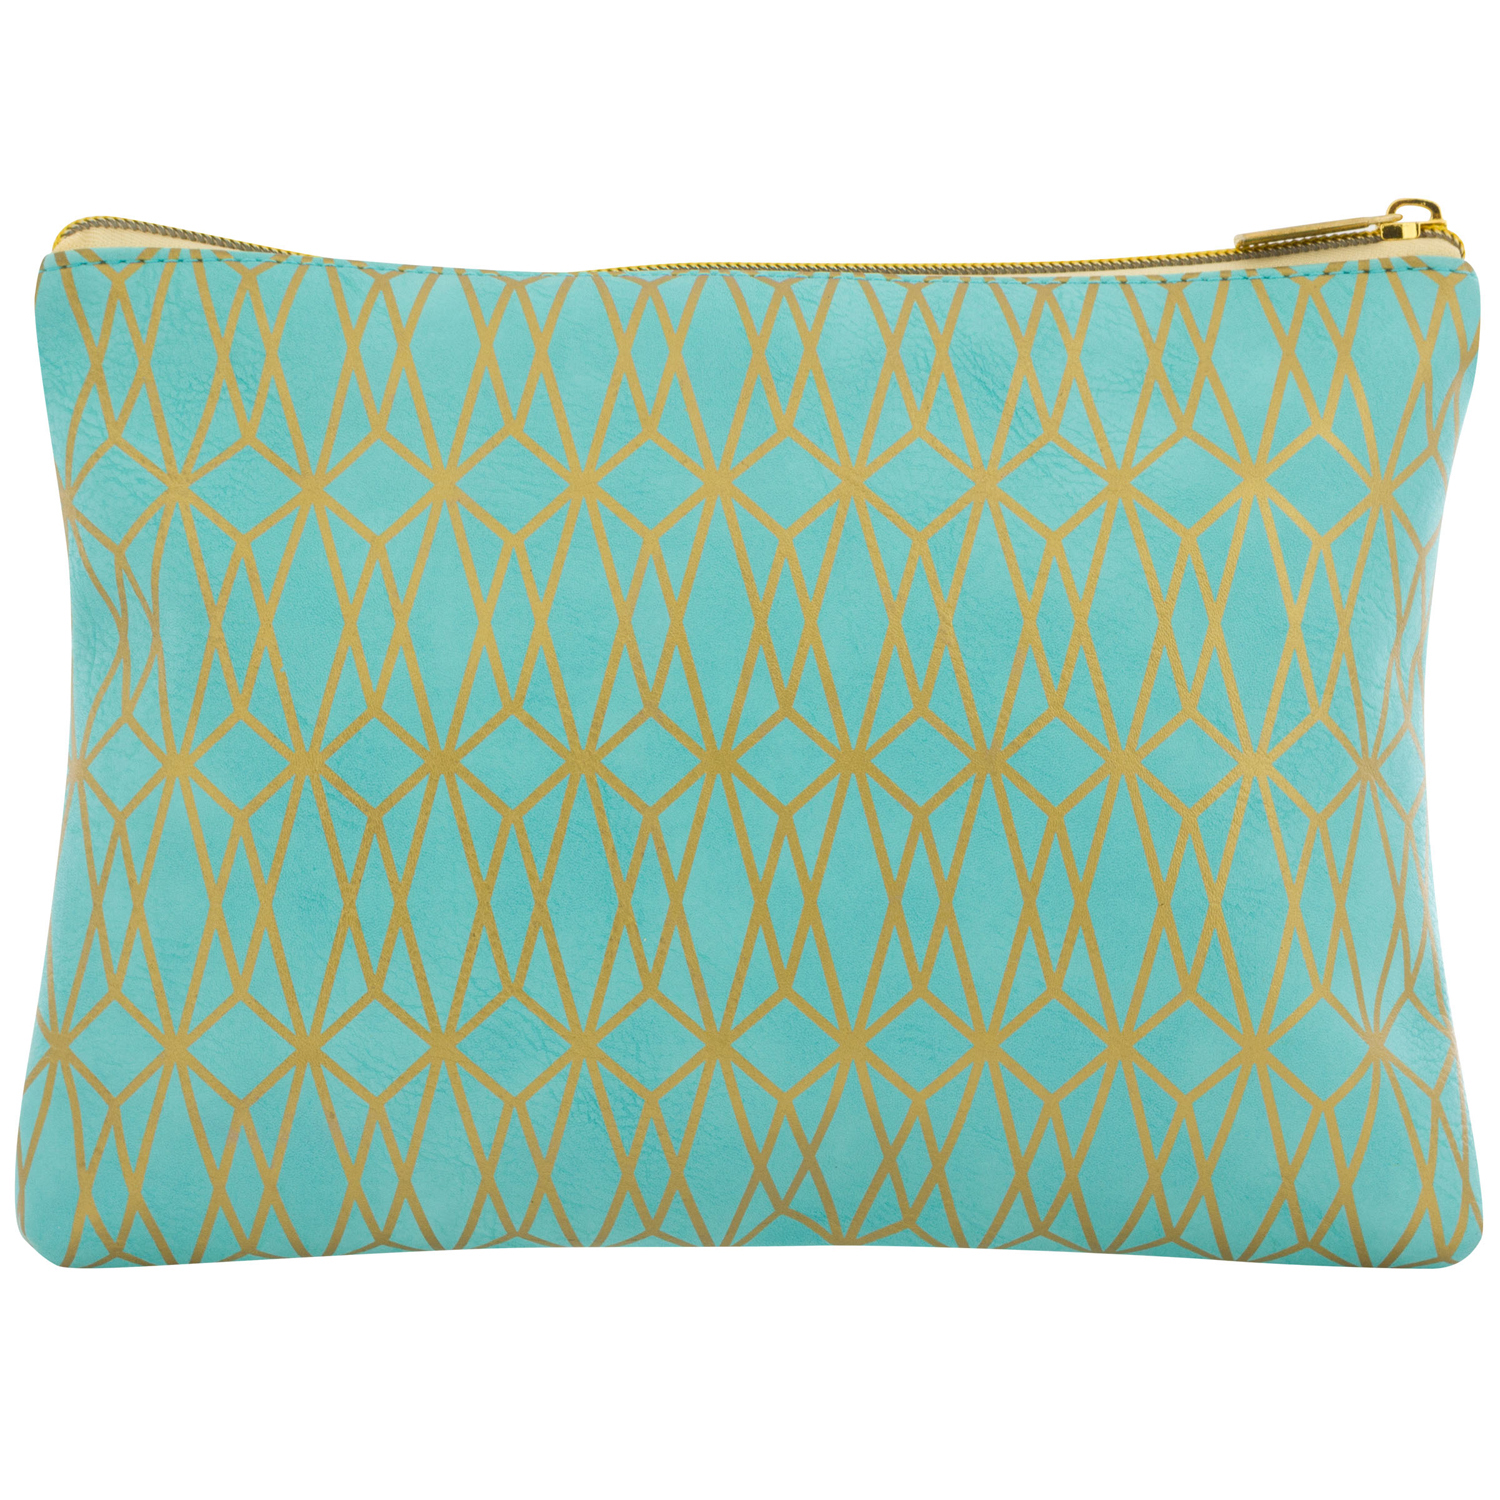 Feather Star Dust Cosmetic Bag